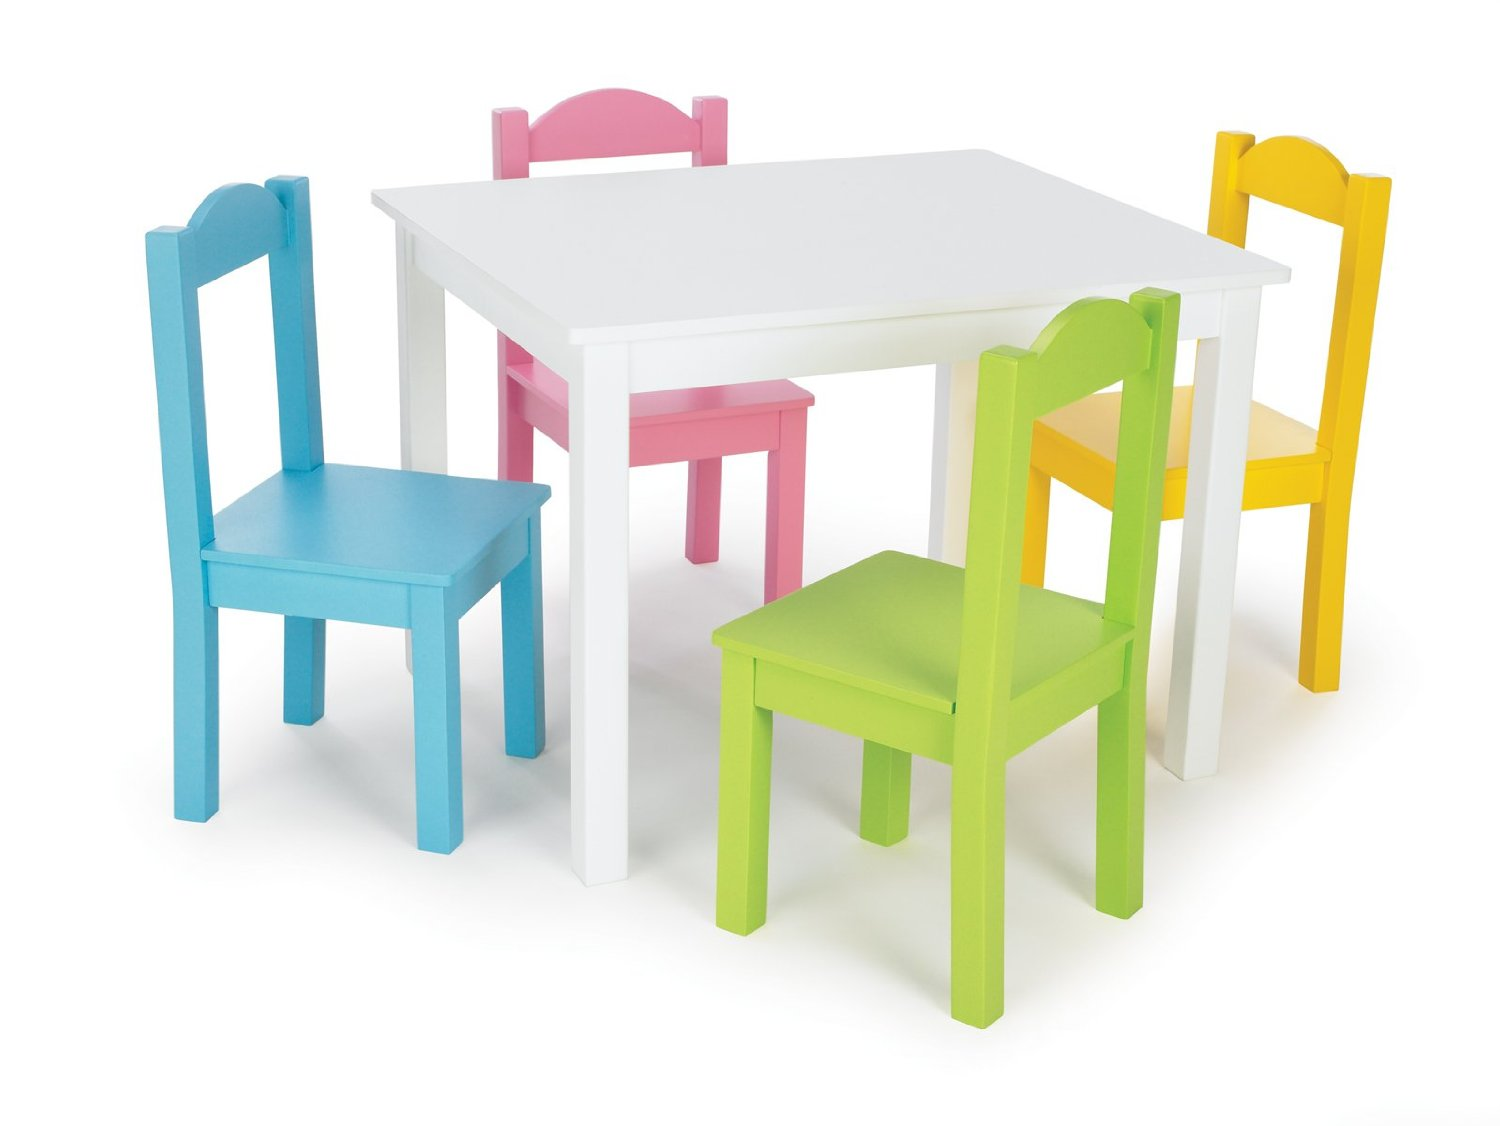 Superieur White Table And Chair Set For Toddlers With Colorful Color